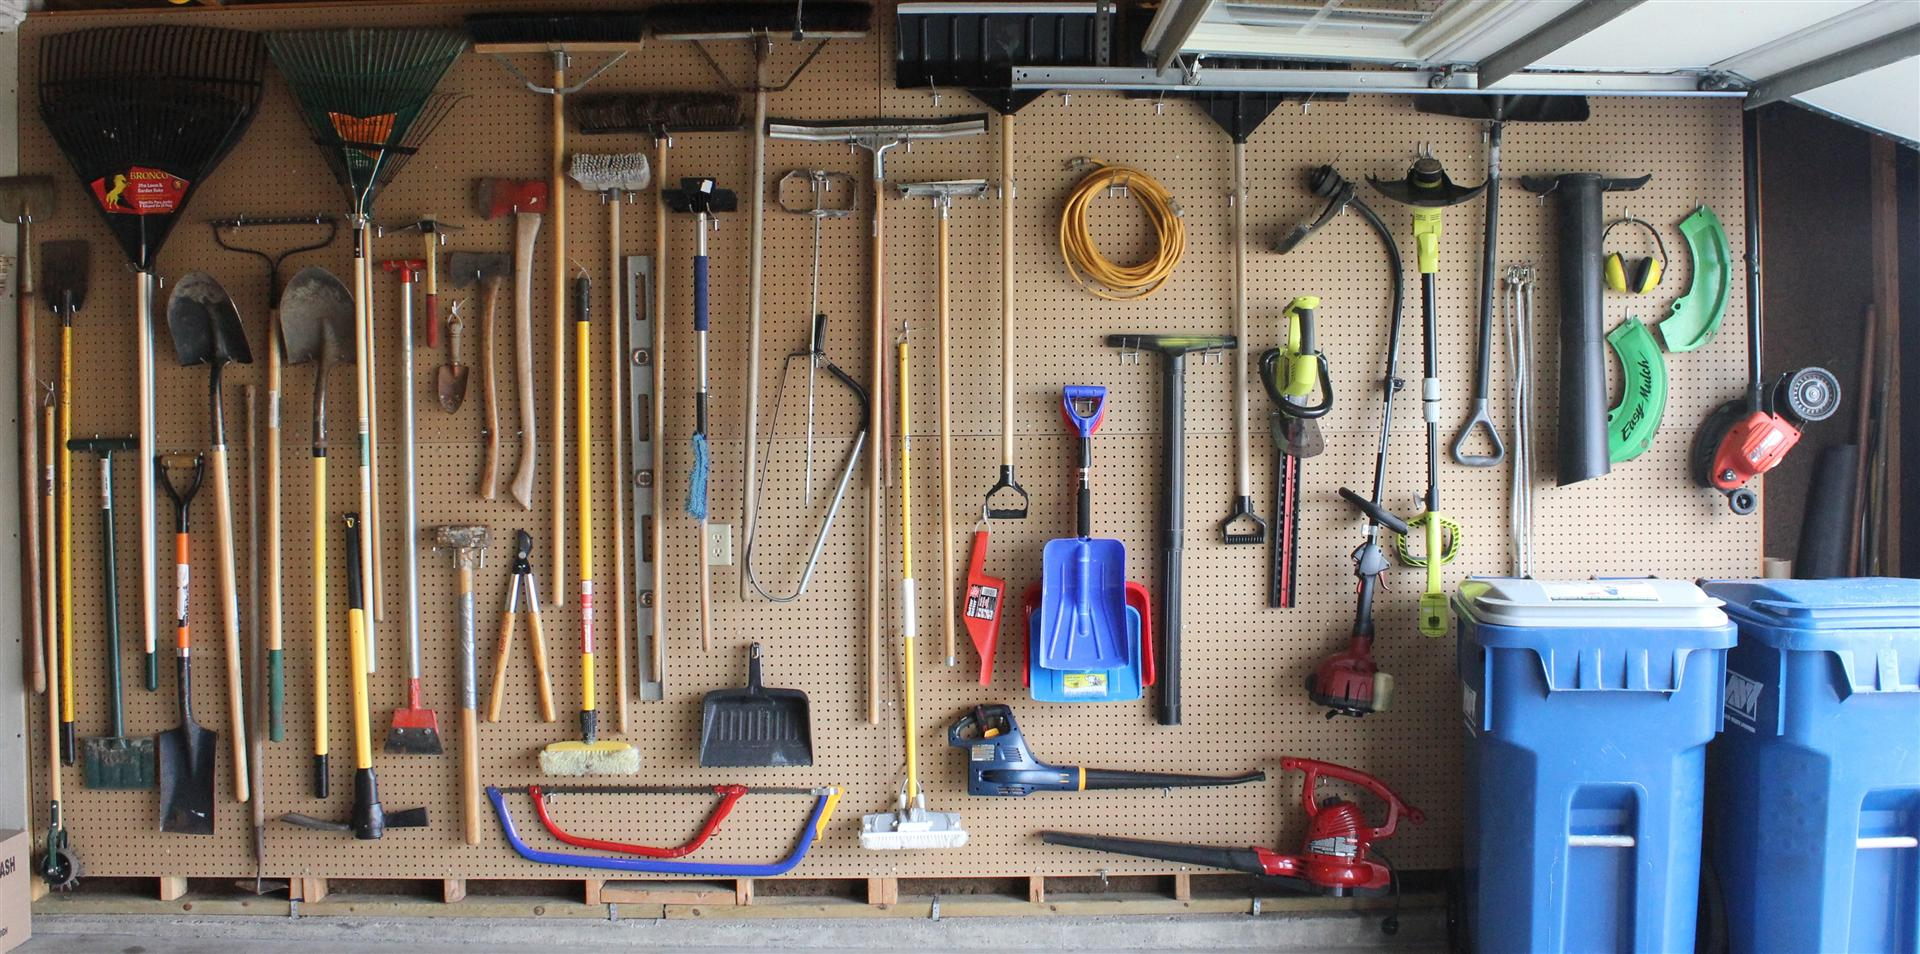 10 easy ways to upgrade your garage in 1 weekend - Armoire de rangement pour garage ...